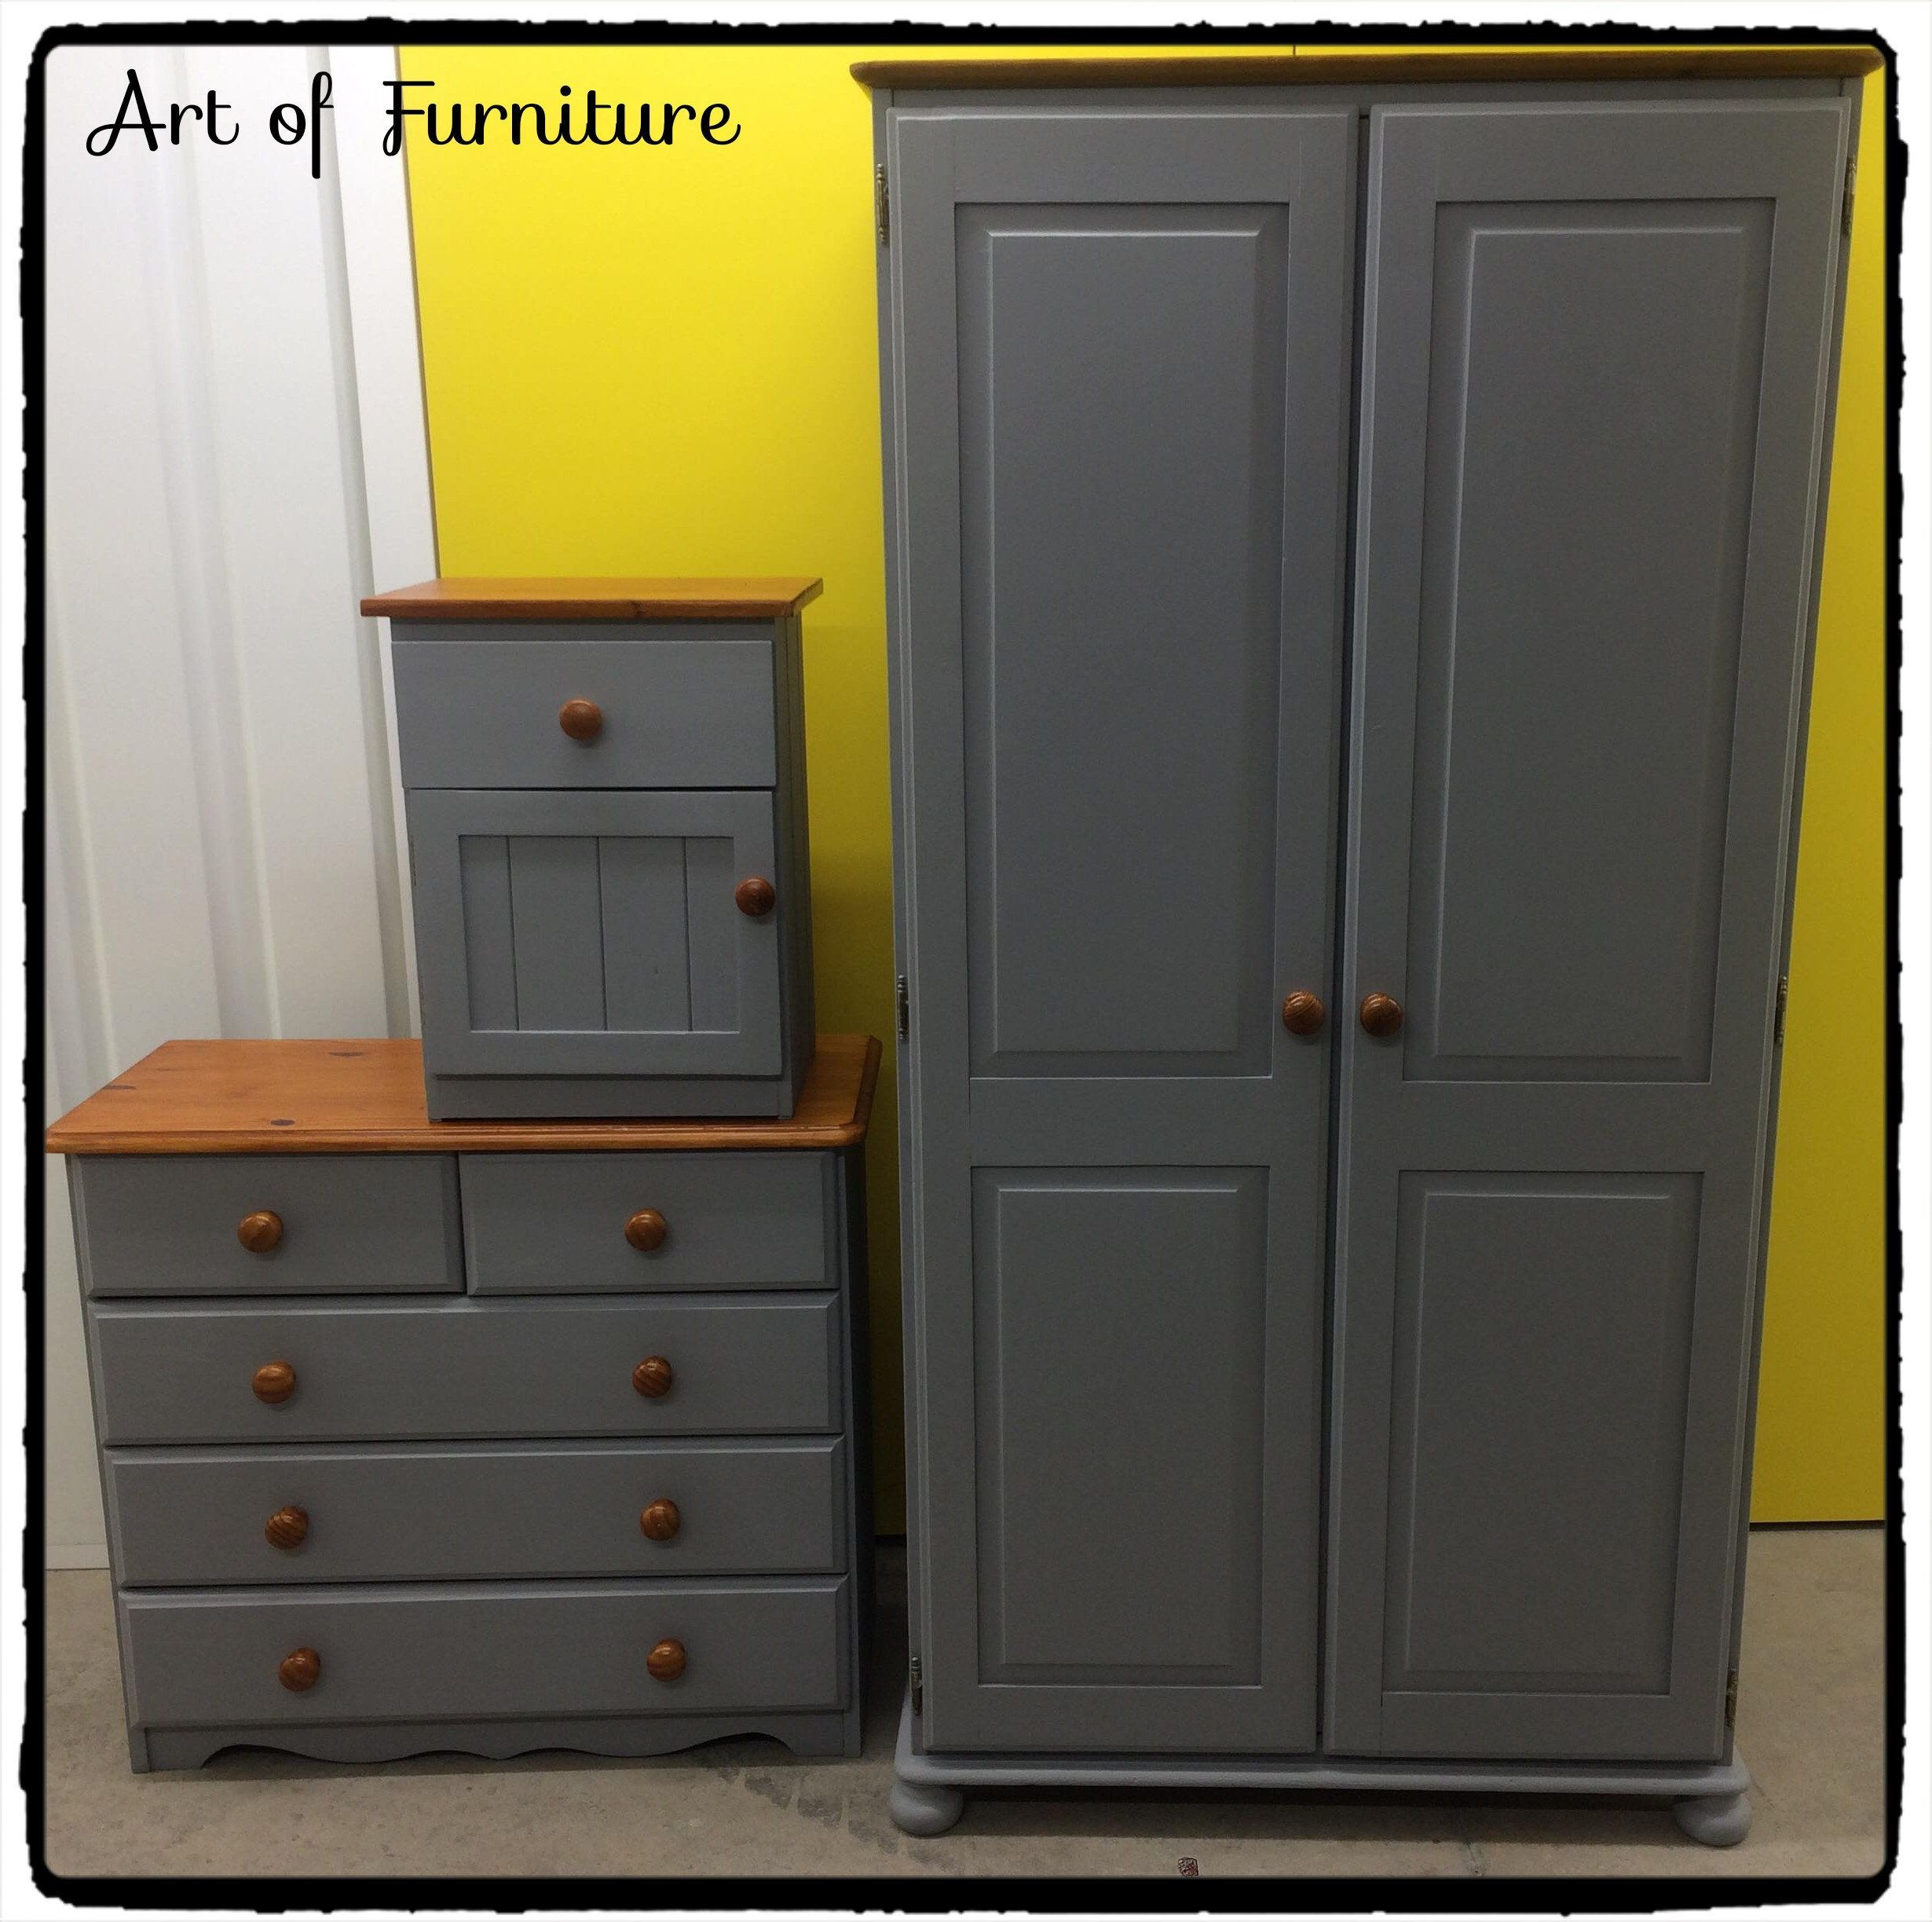 Pine rustic bedroom furniture set wardrobe chest of over drawers